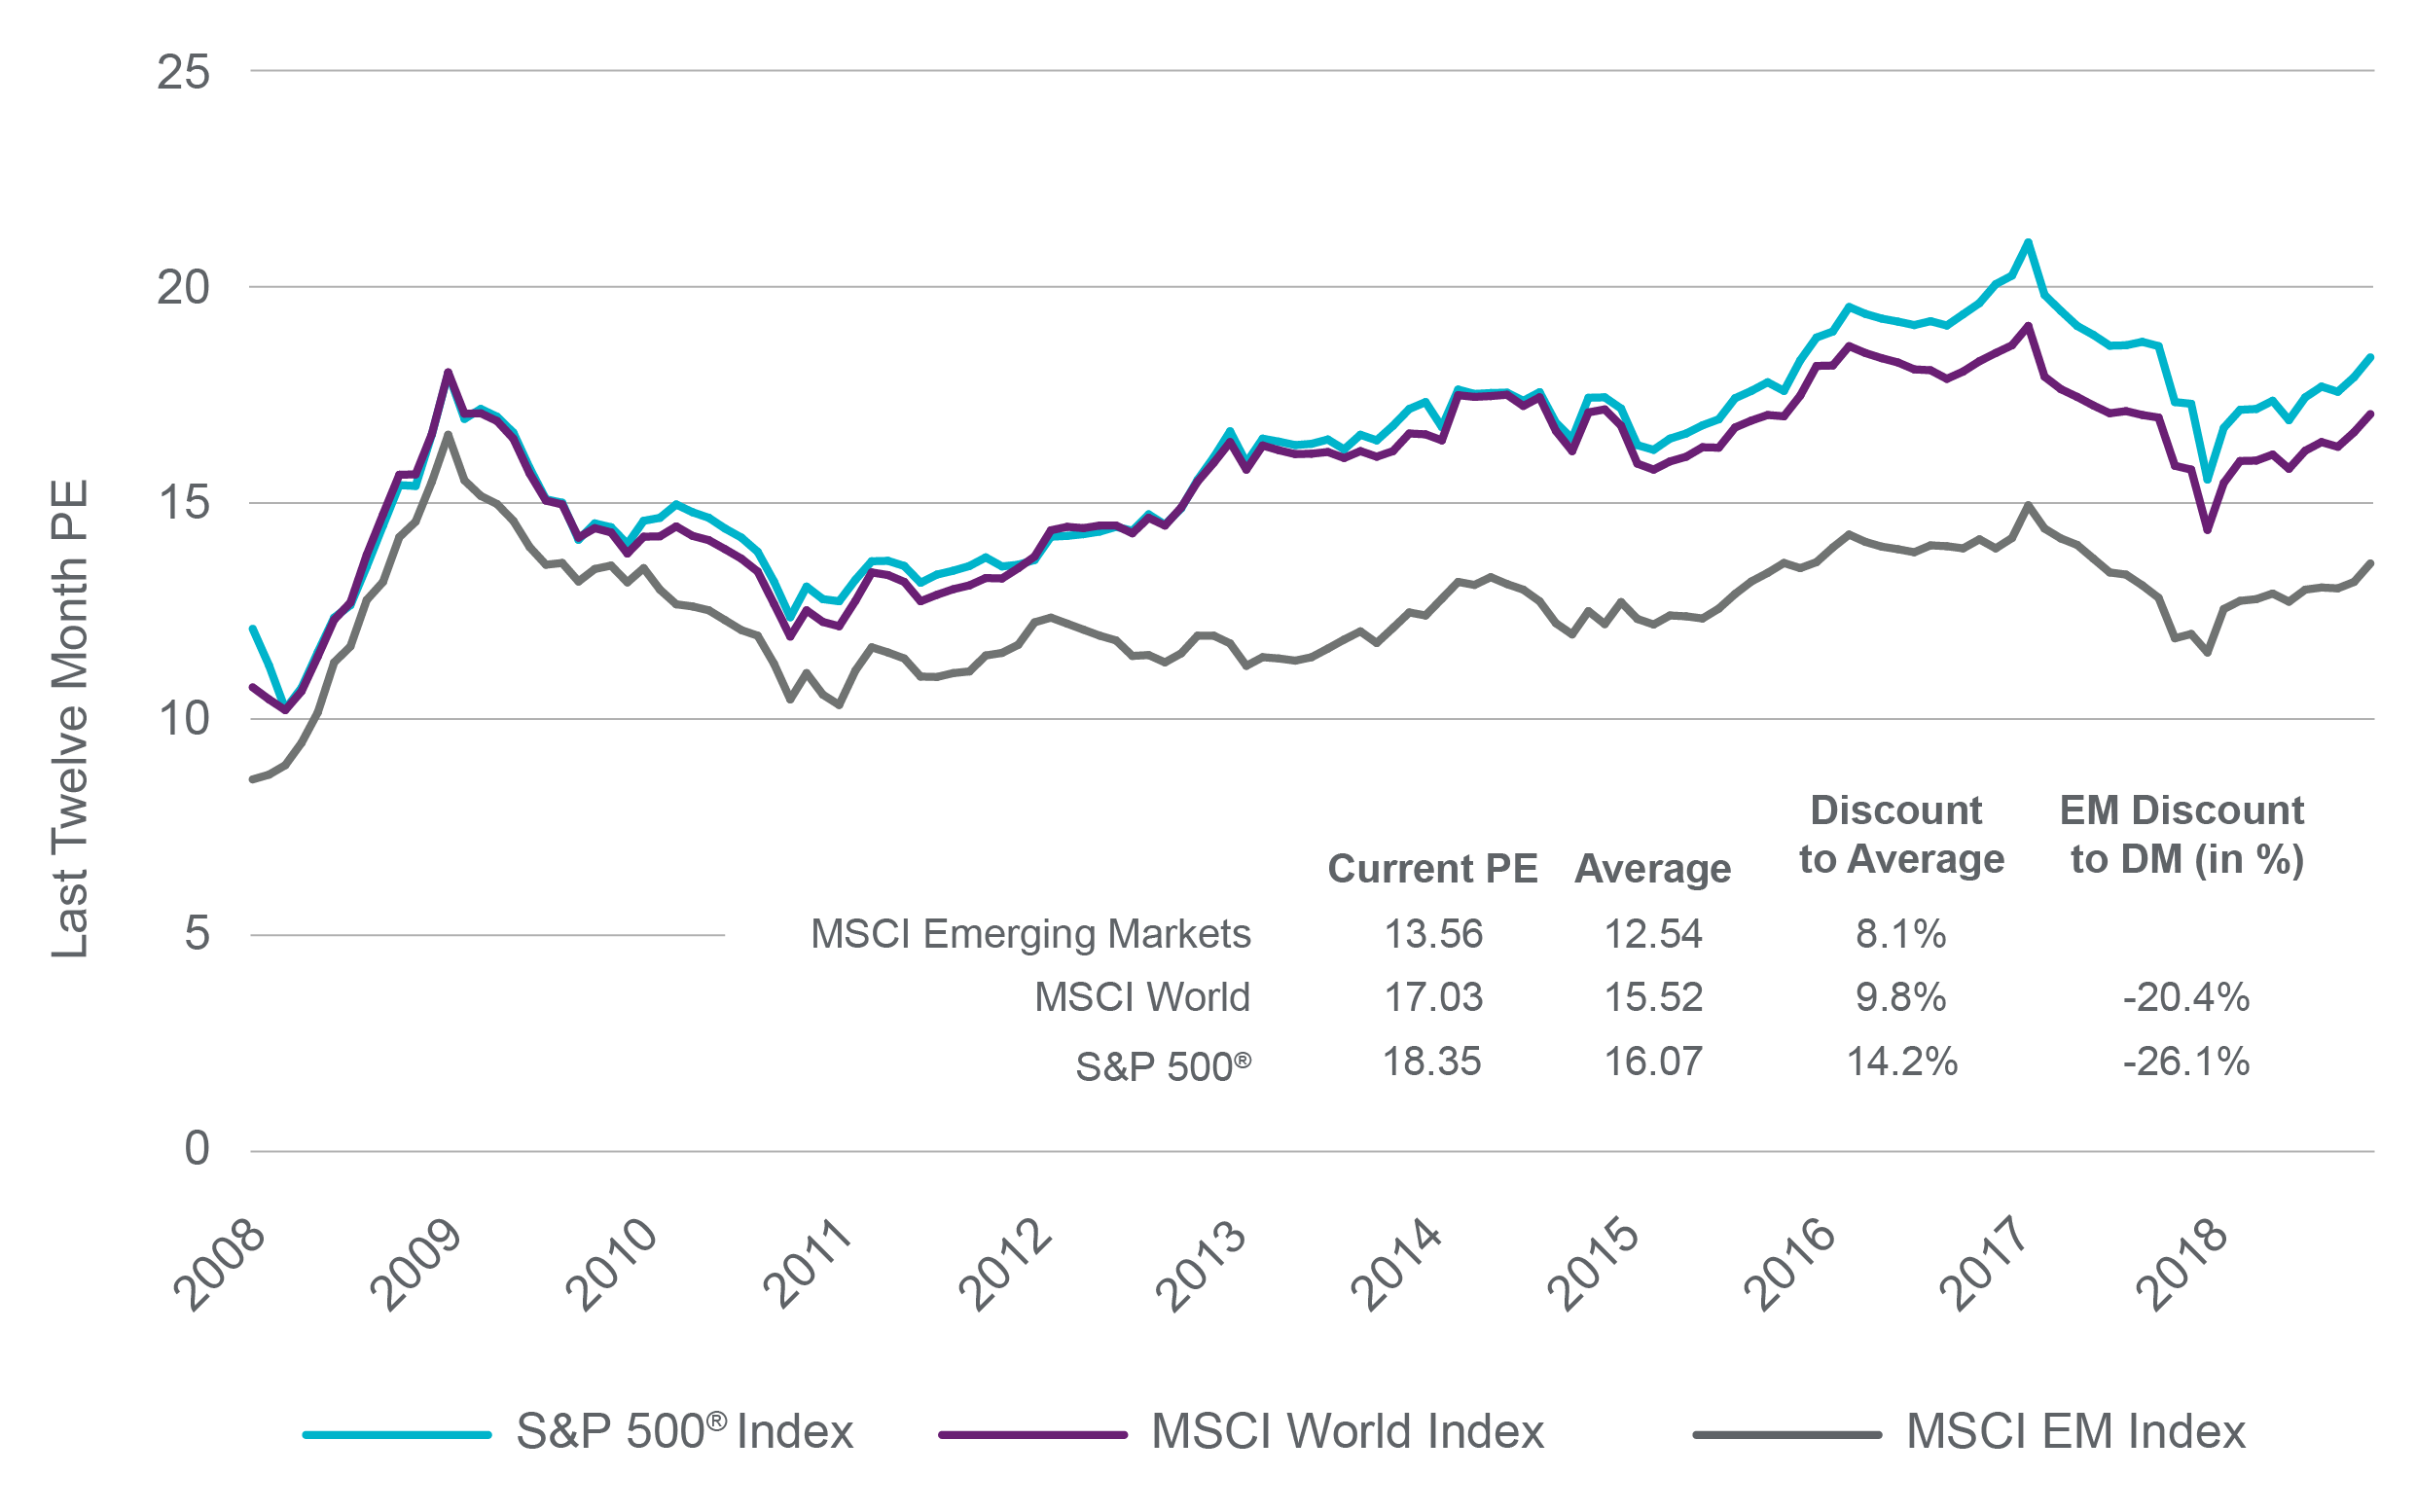 Emerging Market Valuations (12/31/08 - 10/31/19)